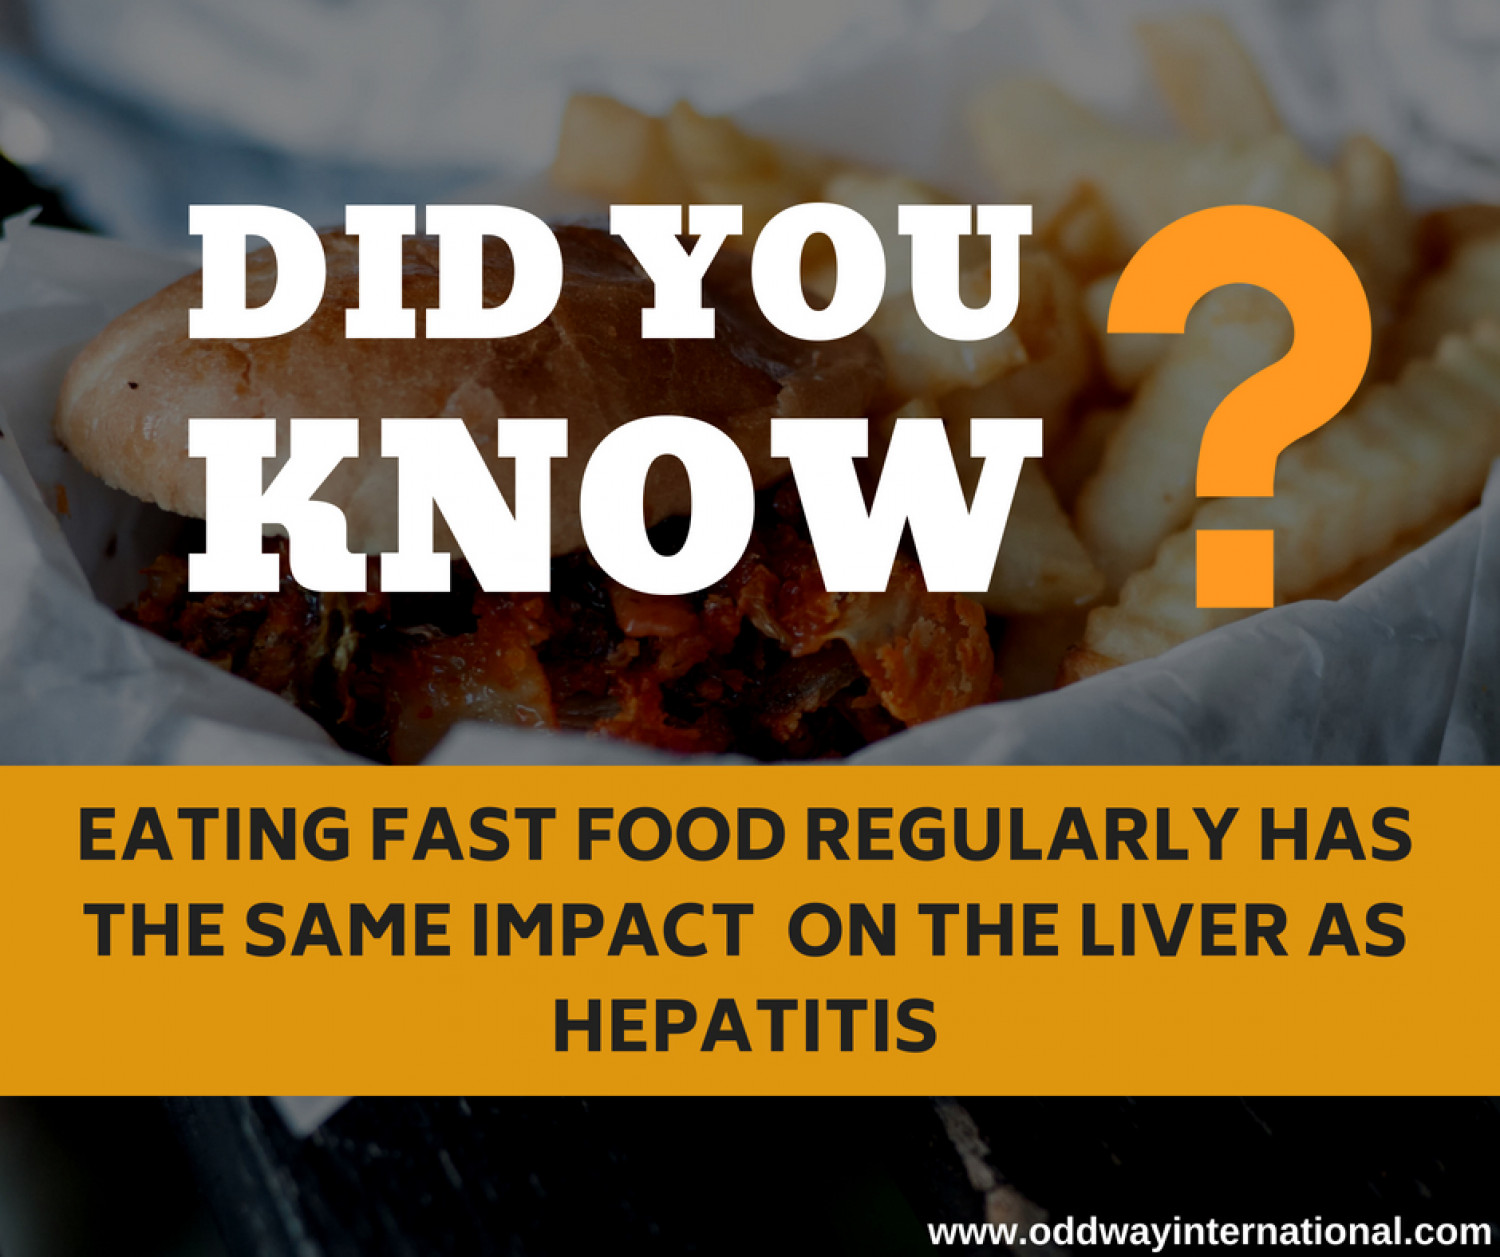 Did you know - Health Facts Infographic